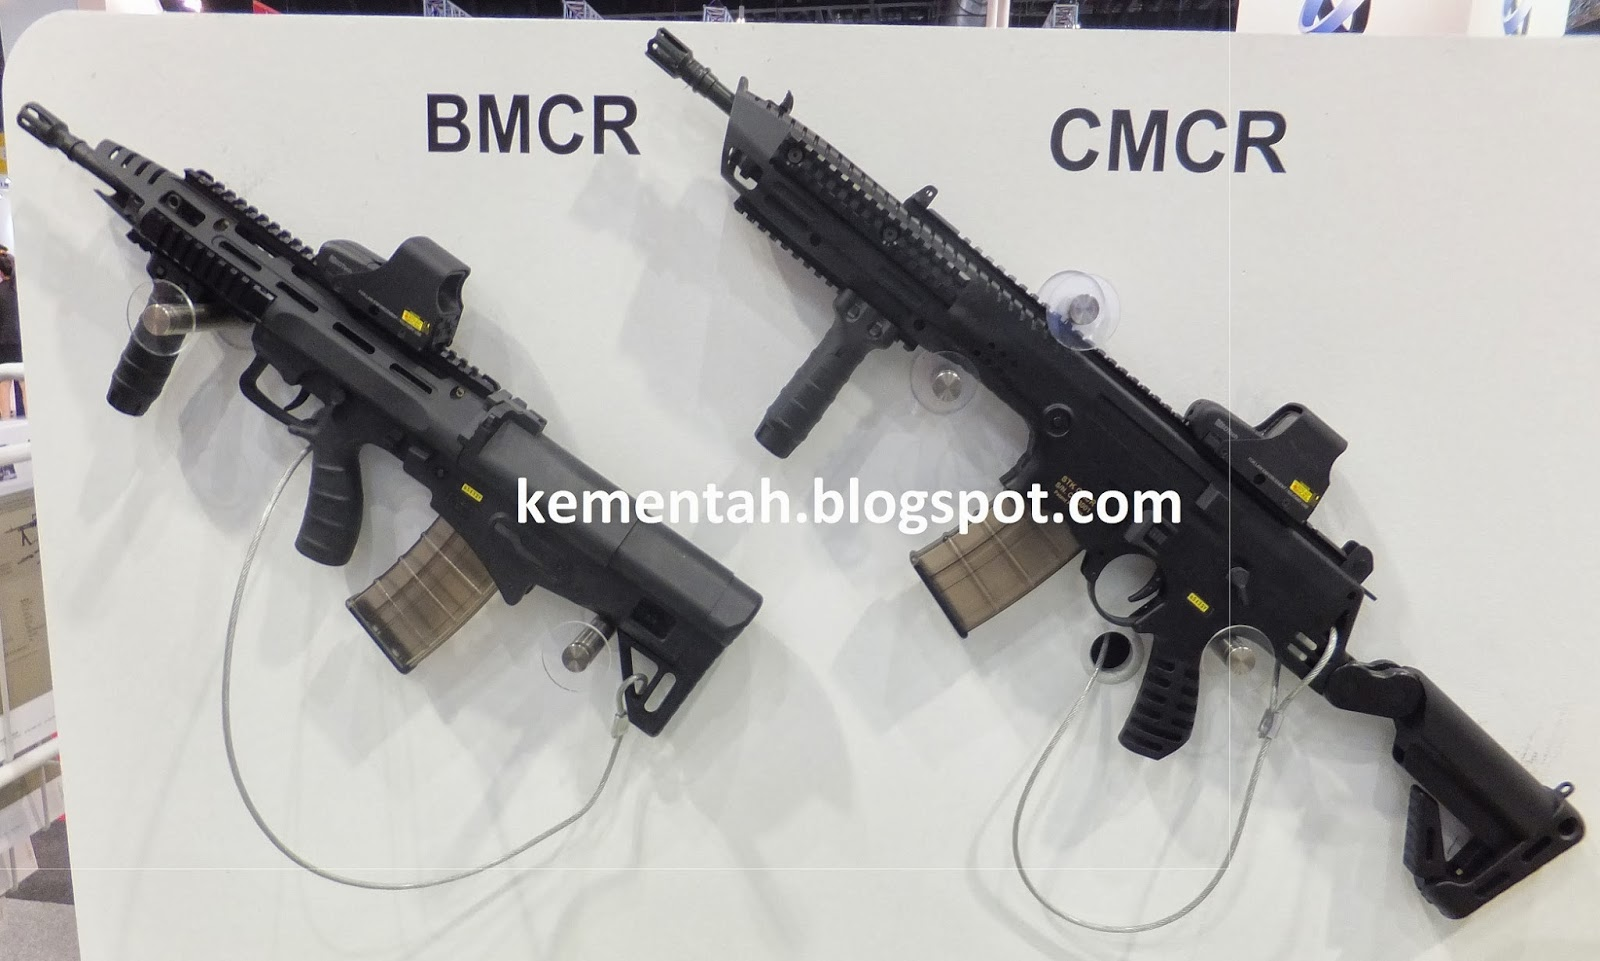 Drdo multical rifle unveiled page 7 - In The End I Would Like To Say I Do Not Want Another Tavor Ak12 Or Ar 15 But I Want An Original Indian Rifle Which Is As Iconic In The World Representing